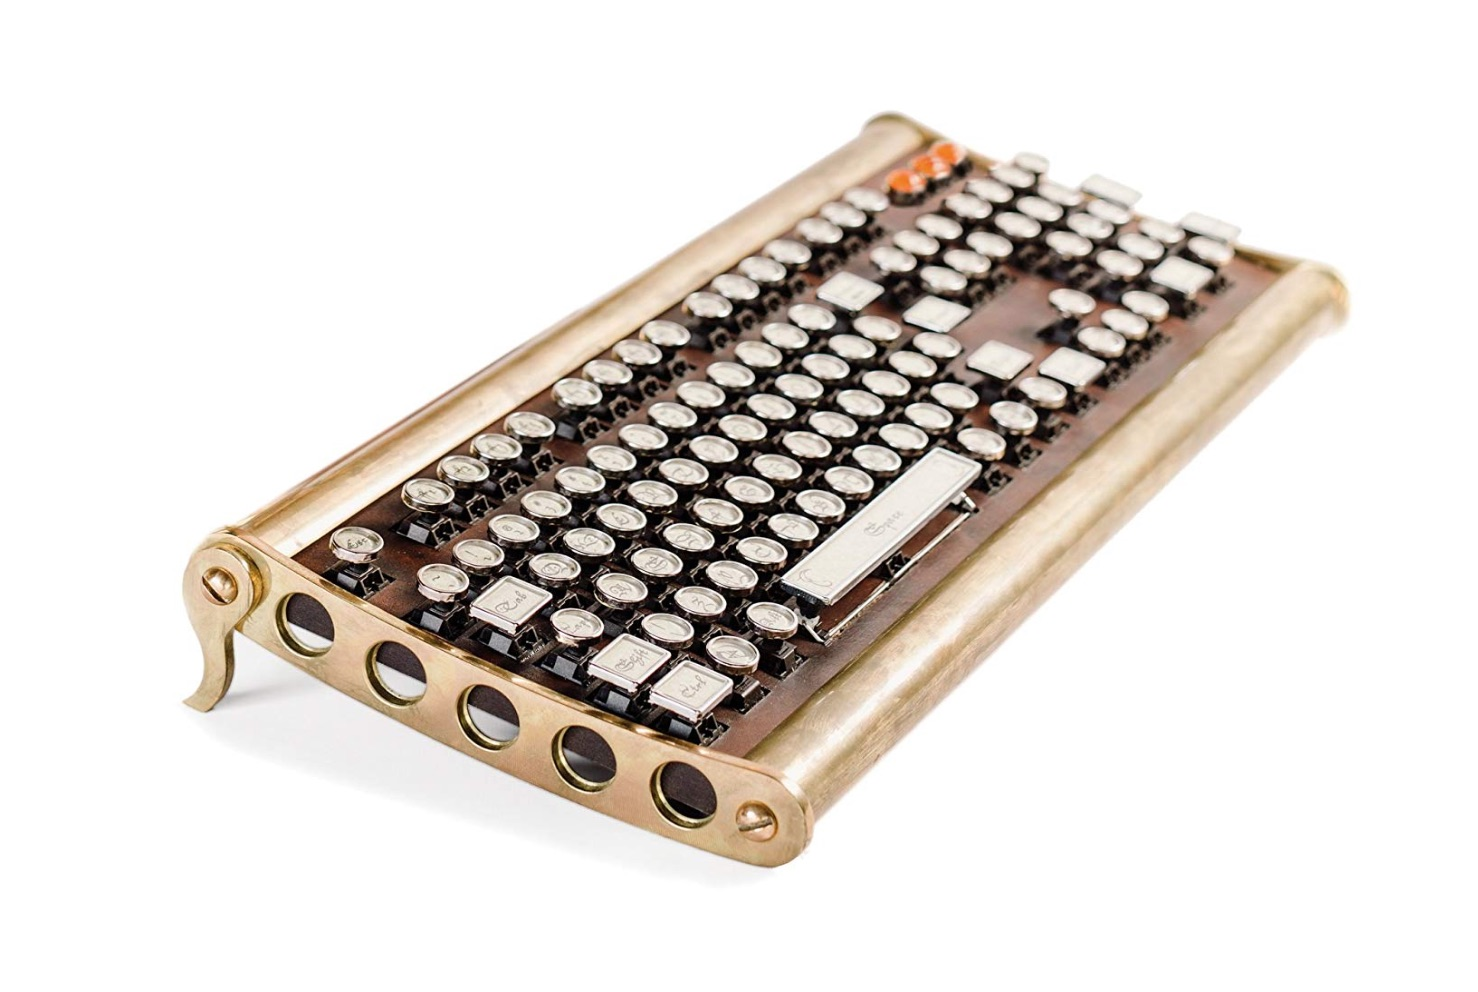 Sojourner Keyboard:  Type in luxury with this aged brass construction keyboard that has cherry MX switches. If you don't buy the keyboard, read the reviews on Amazon for some good laughs.